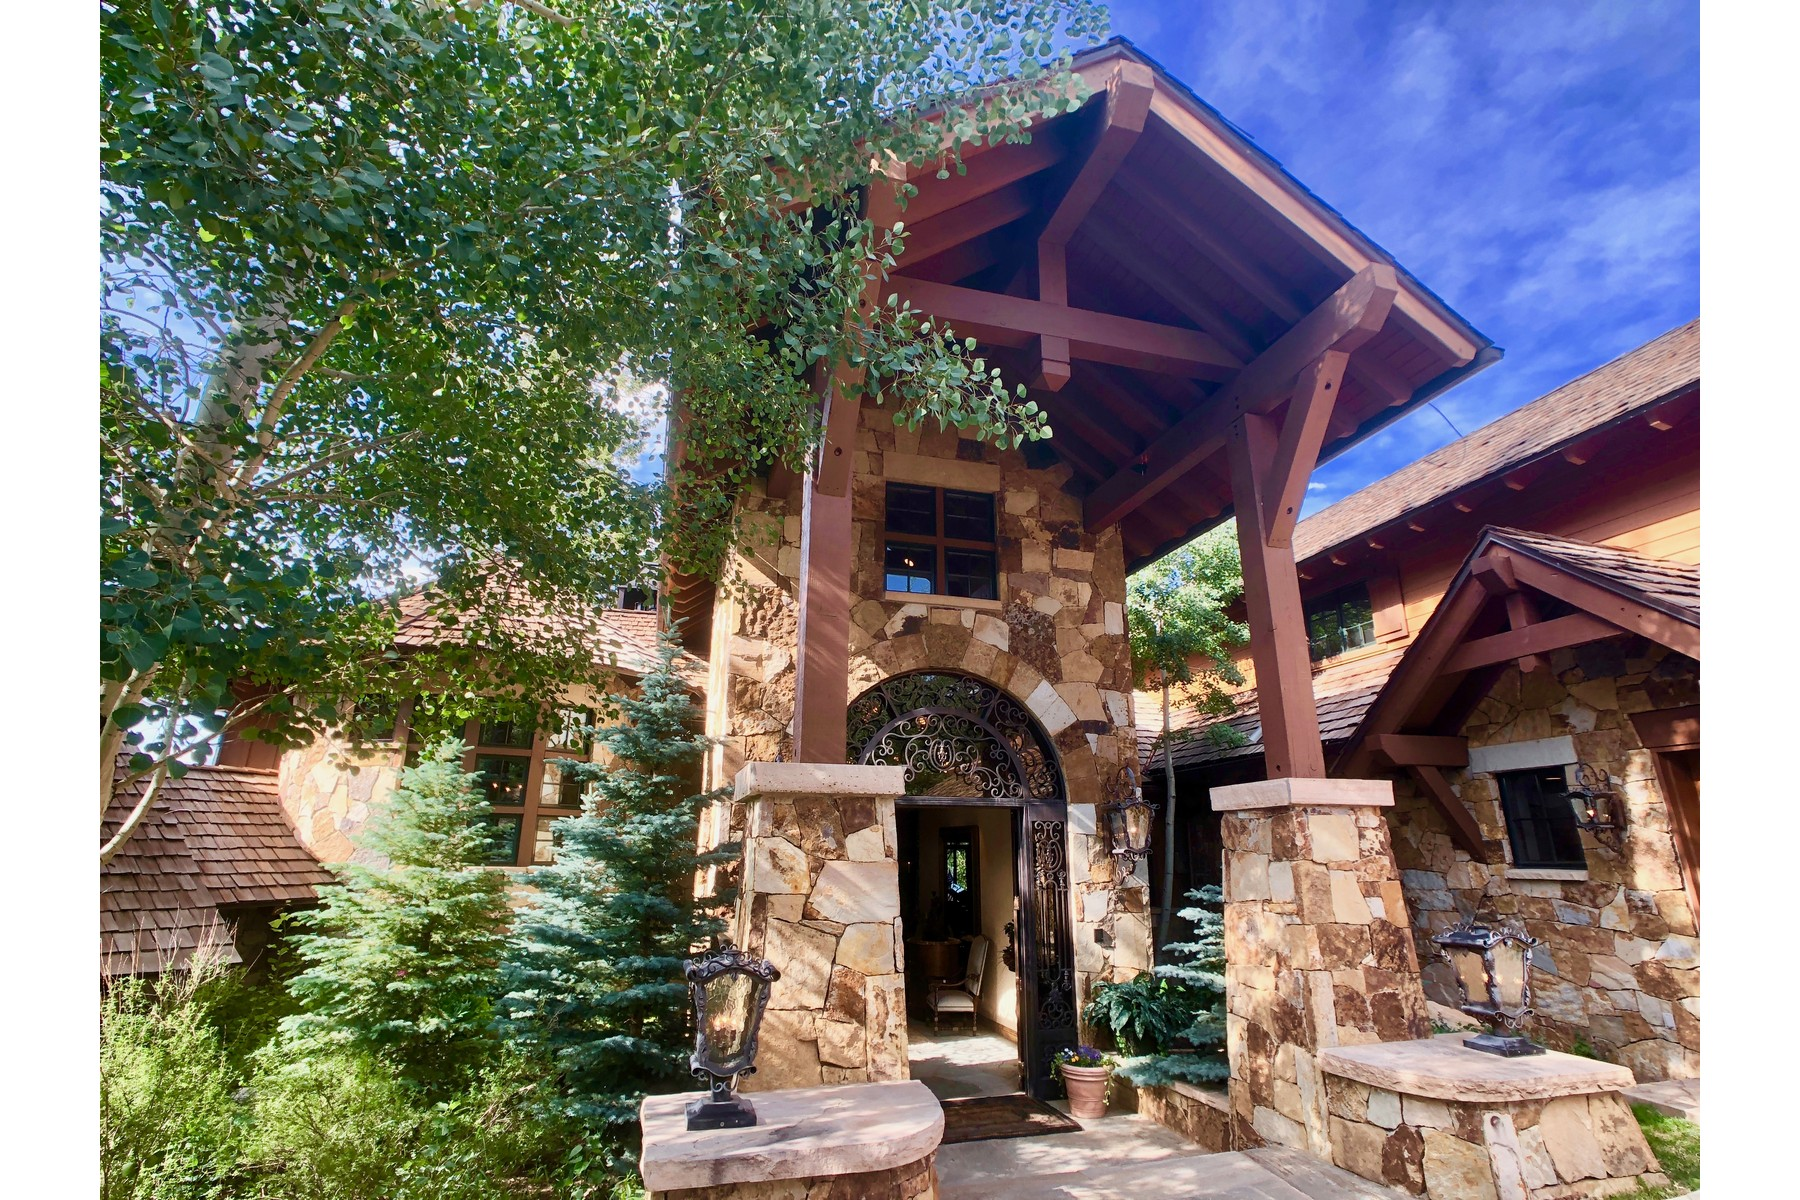 Additional photo for property listing at A rare and exquisite home with elegant finishes and marvelous stonework 116 Settlers Loop Edwards, Colorado 81632 United States